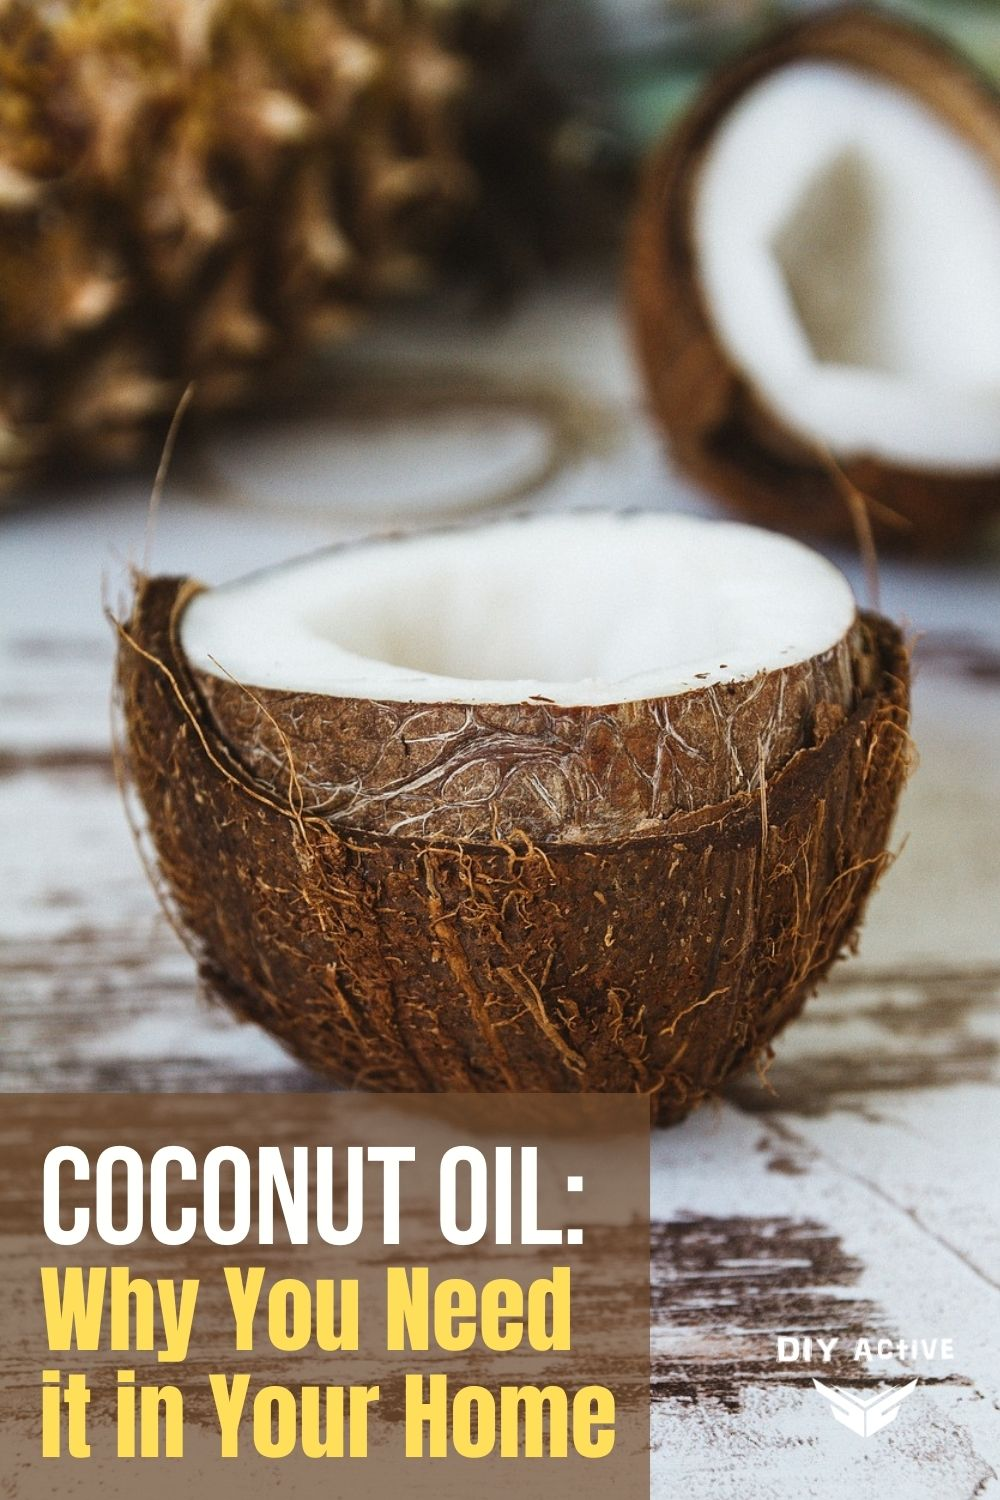 Coconut Oil: Why You Need it in Your Home